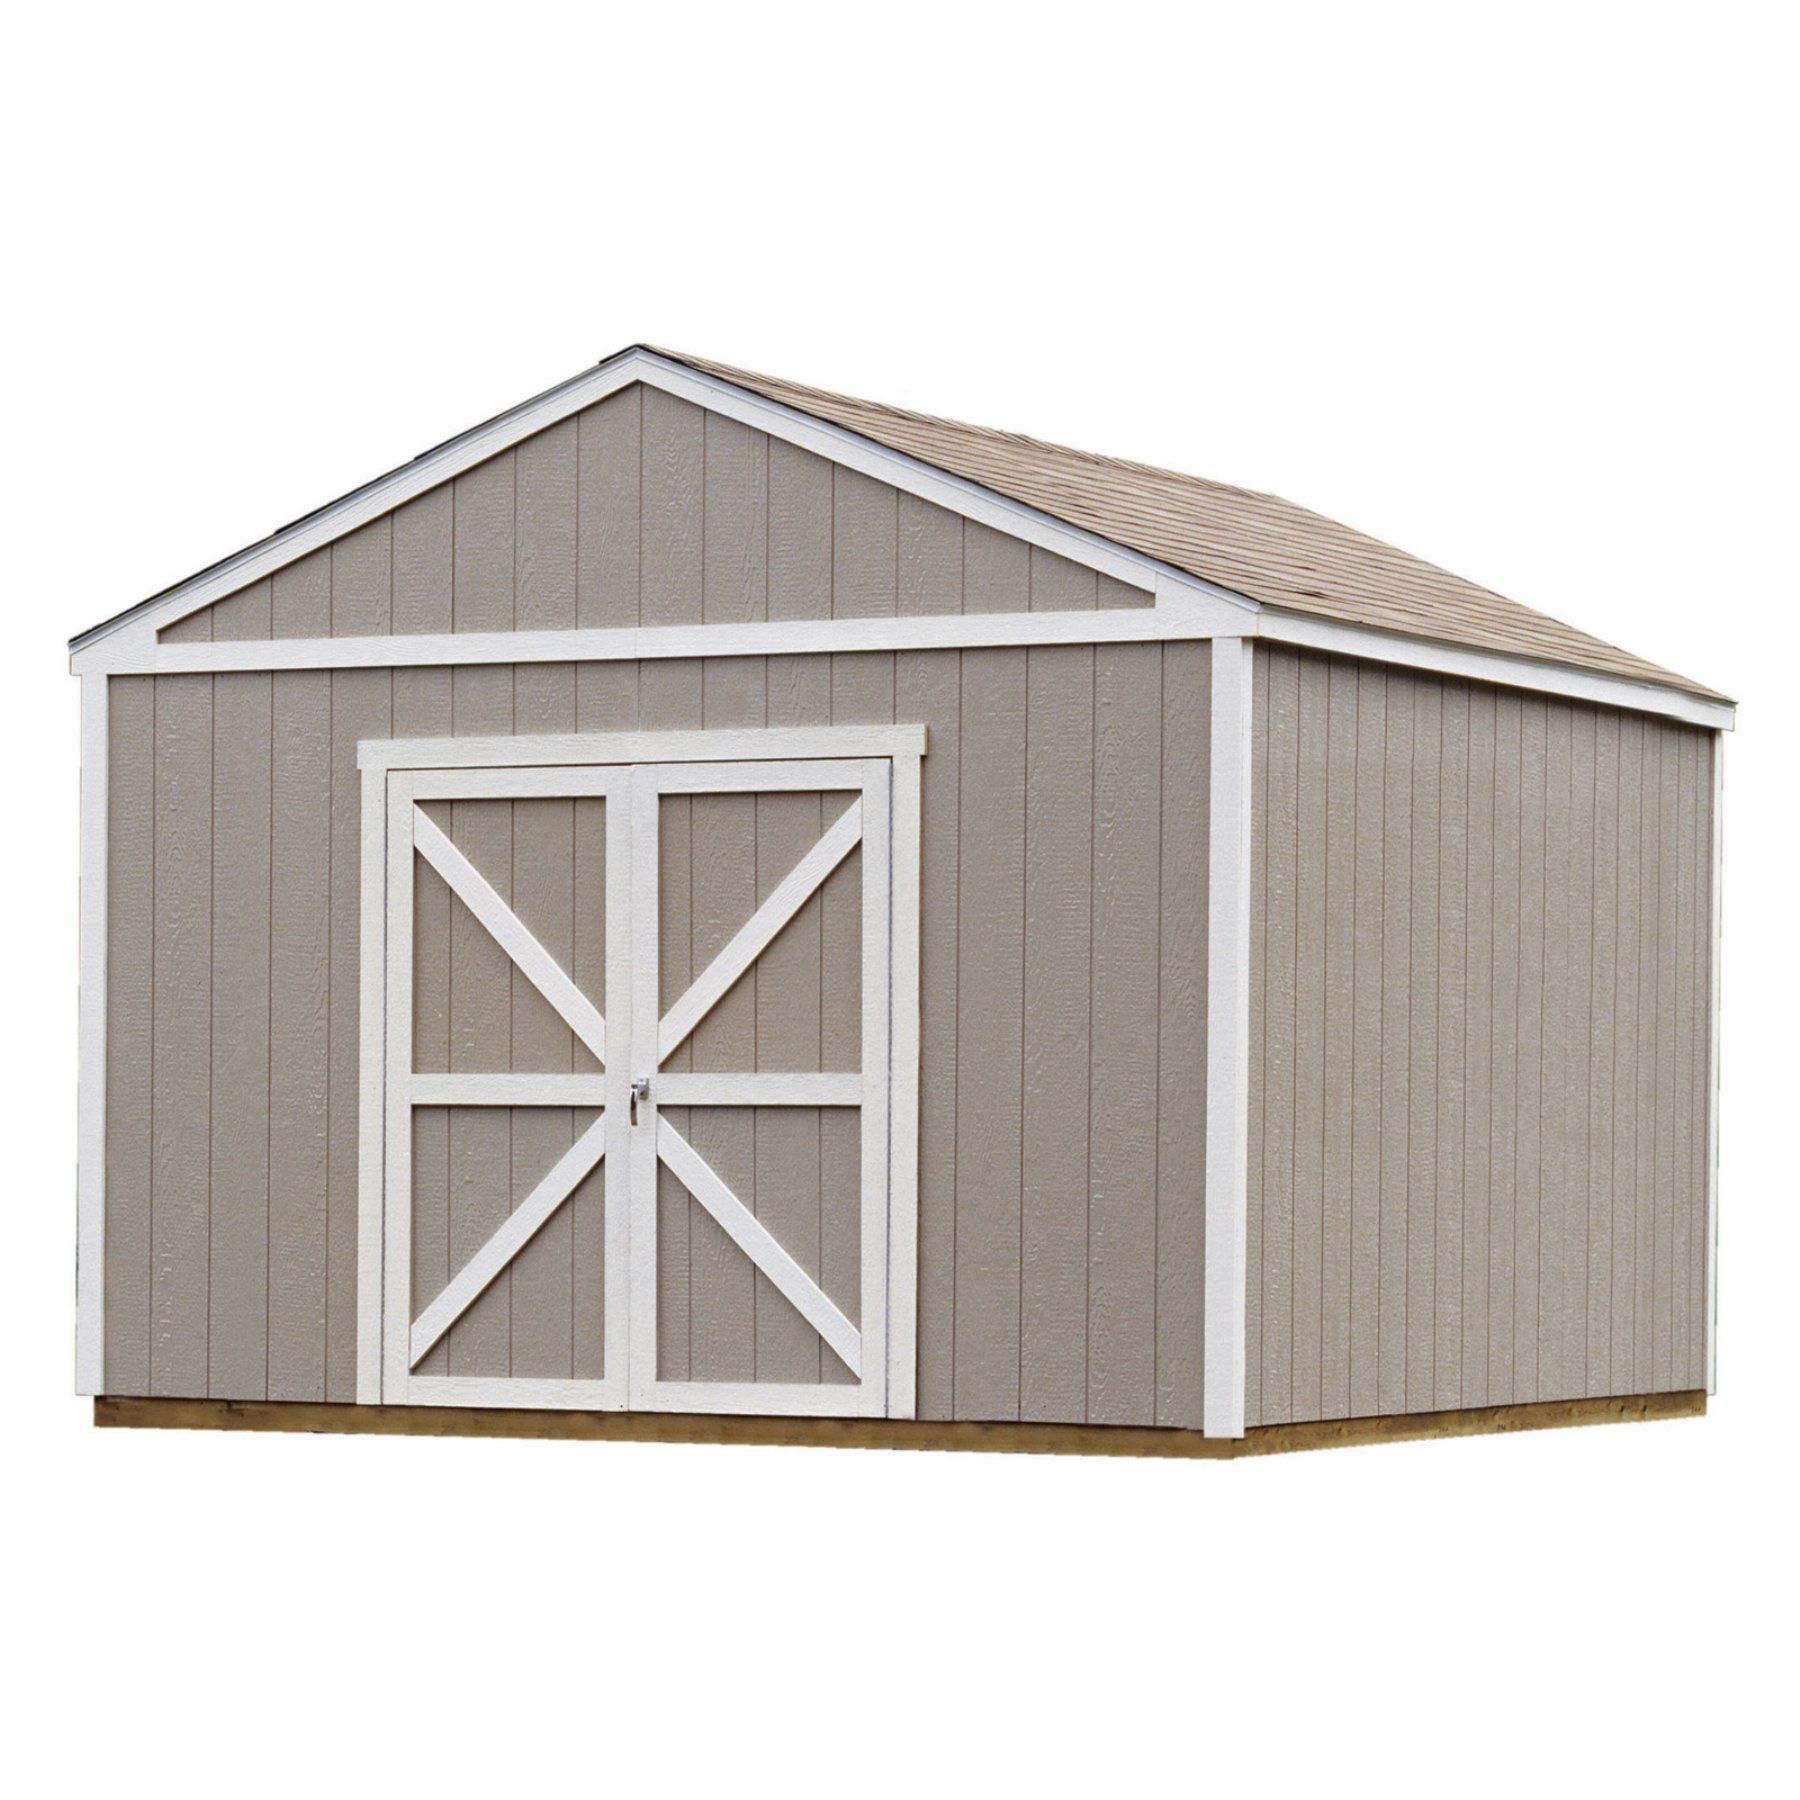 Handy Home Columbia Storage Shed 12 X 12 Ft 18215 0 12x12shedplan Outdoor Storage Sheds Wooden Storage Sheds Shed Storage